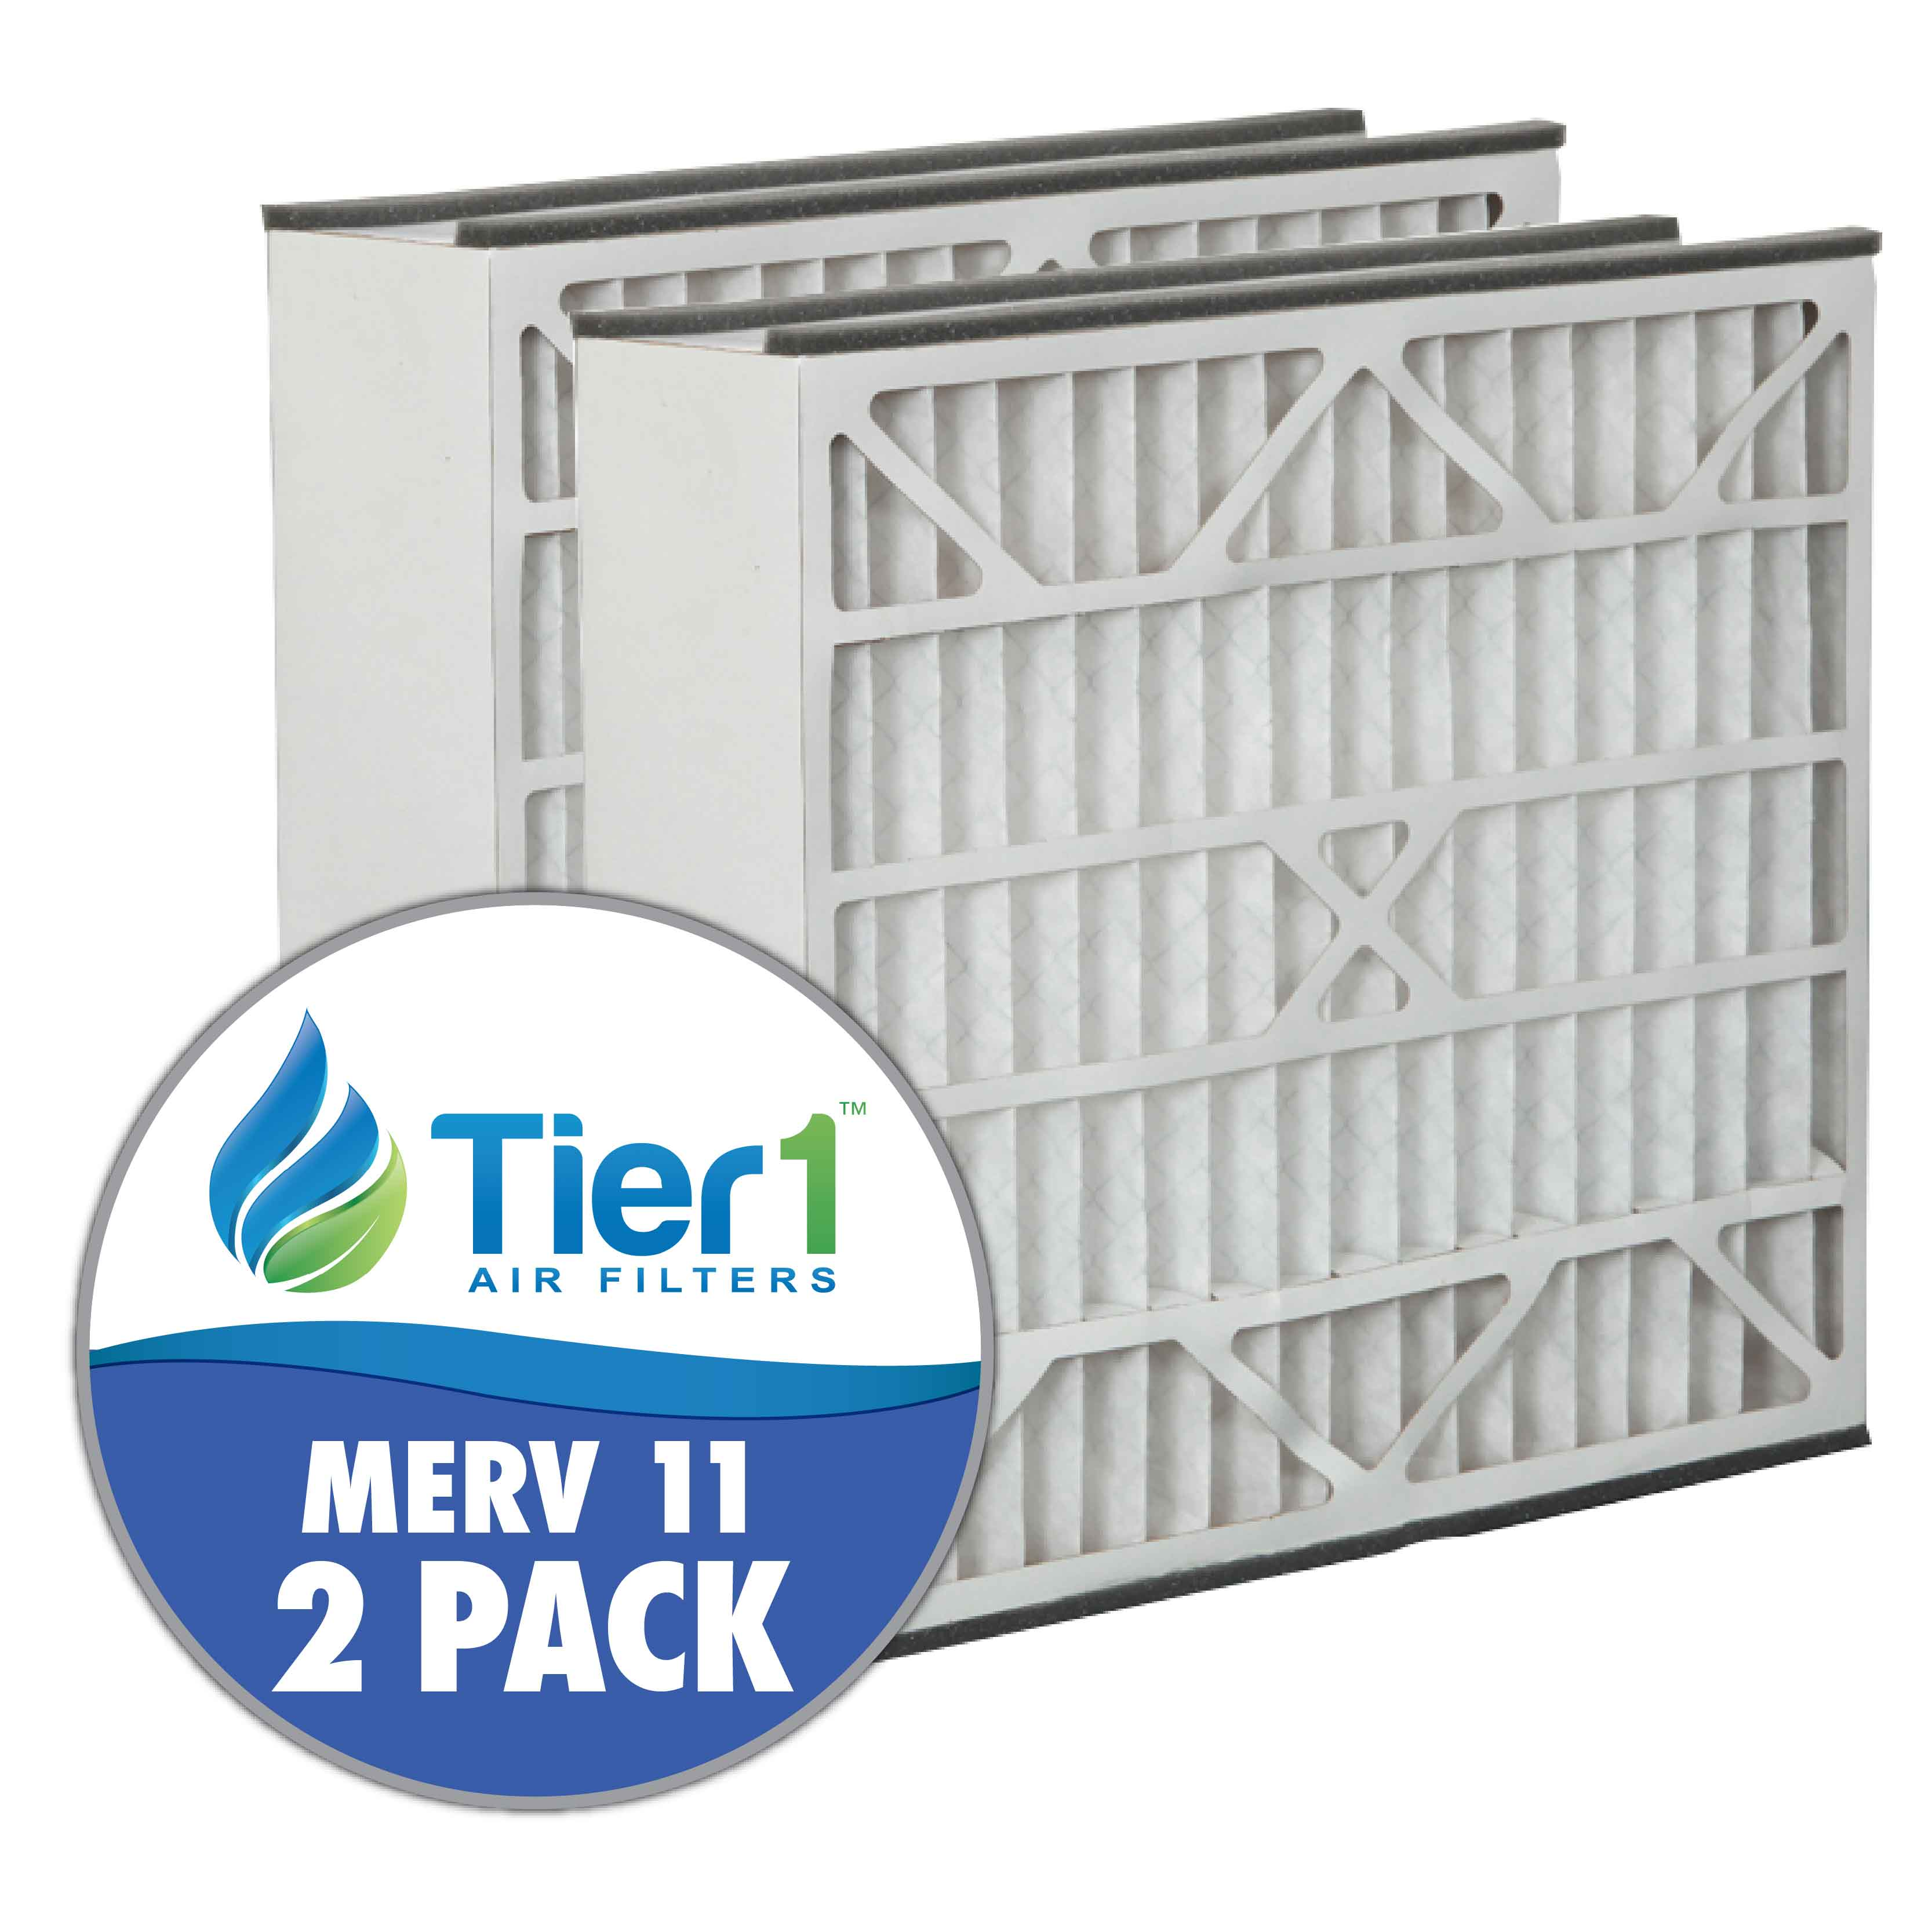 Tier1 Air Cleaner Filter for GeneralAire: 16 x 25 x 5 - MERV 11 (2-Pack) TIER1-DPFR16X25X5M11DGL